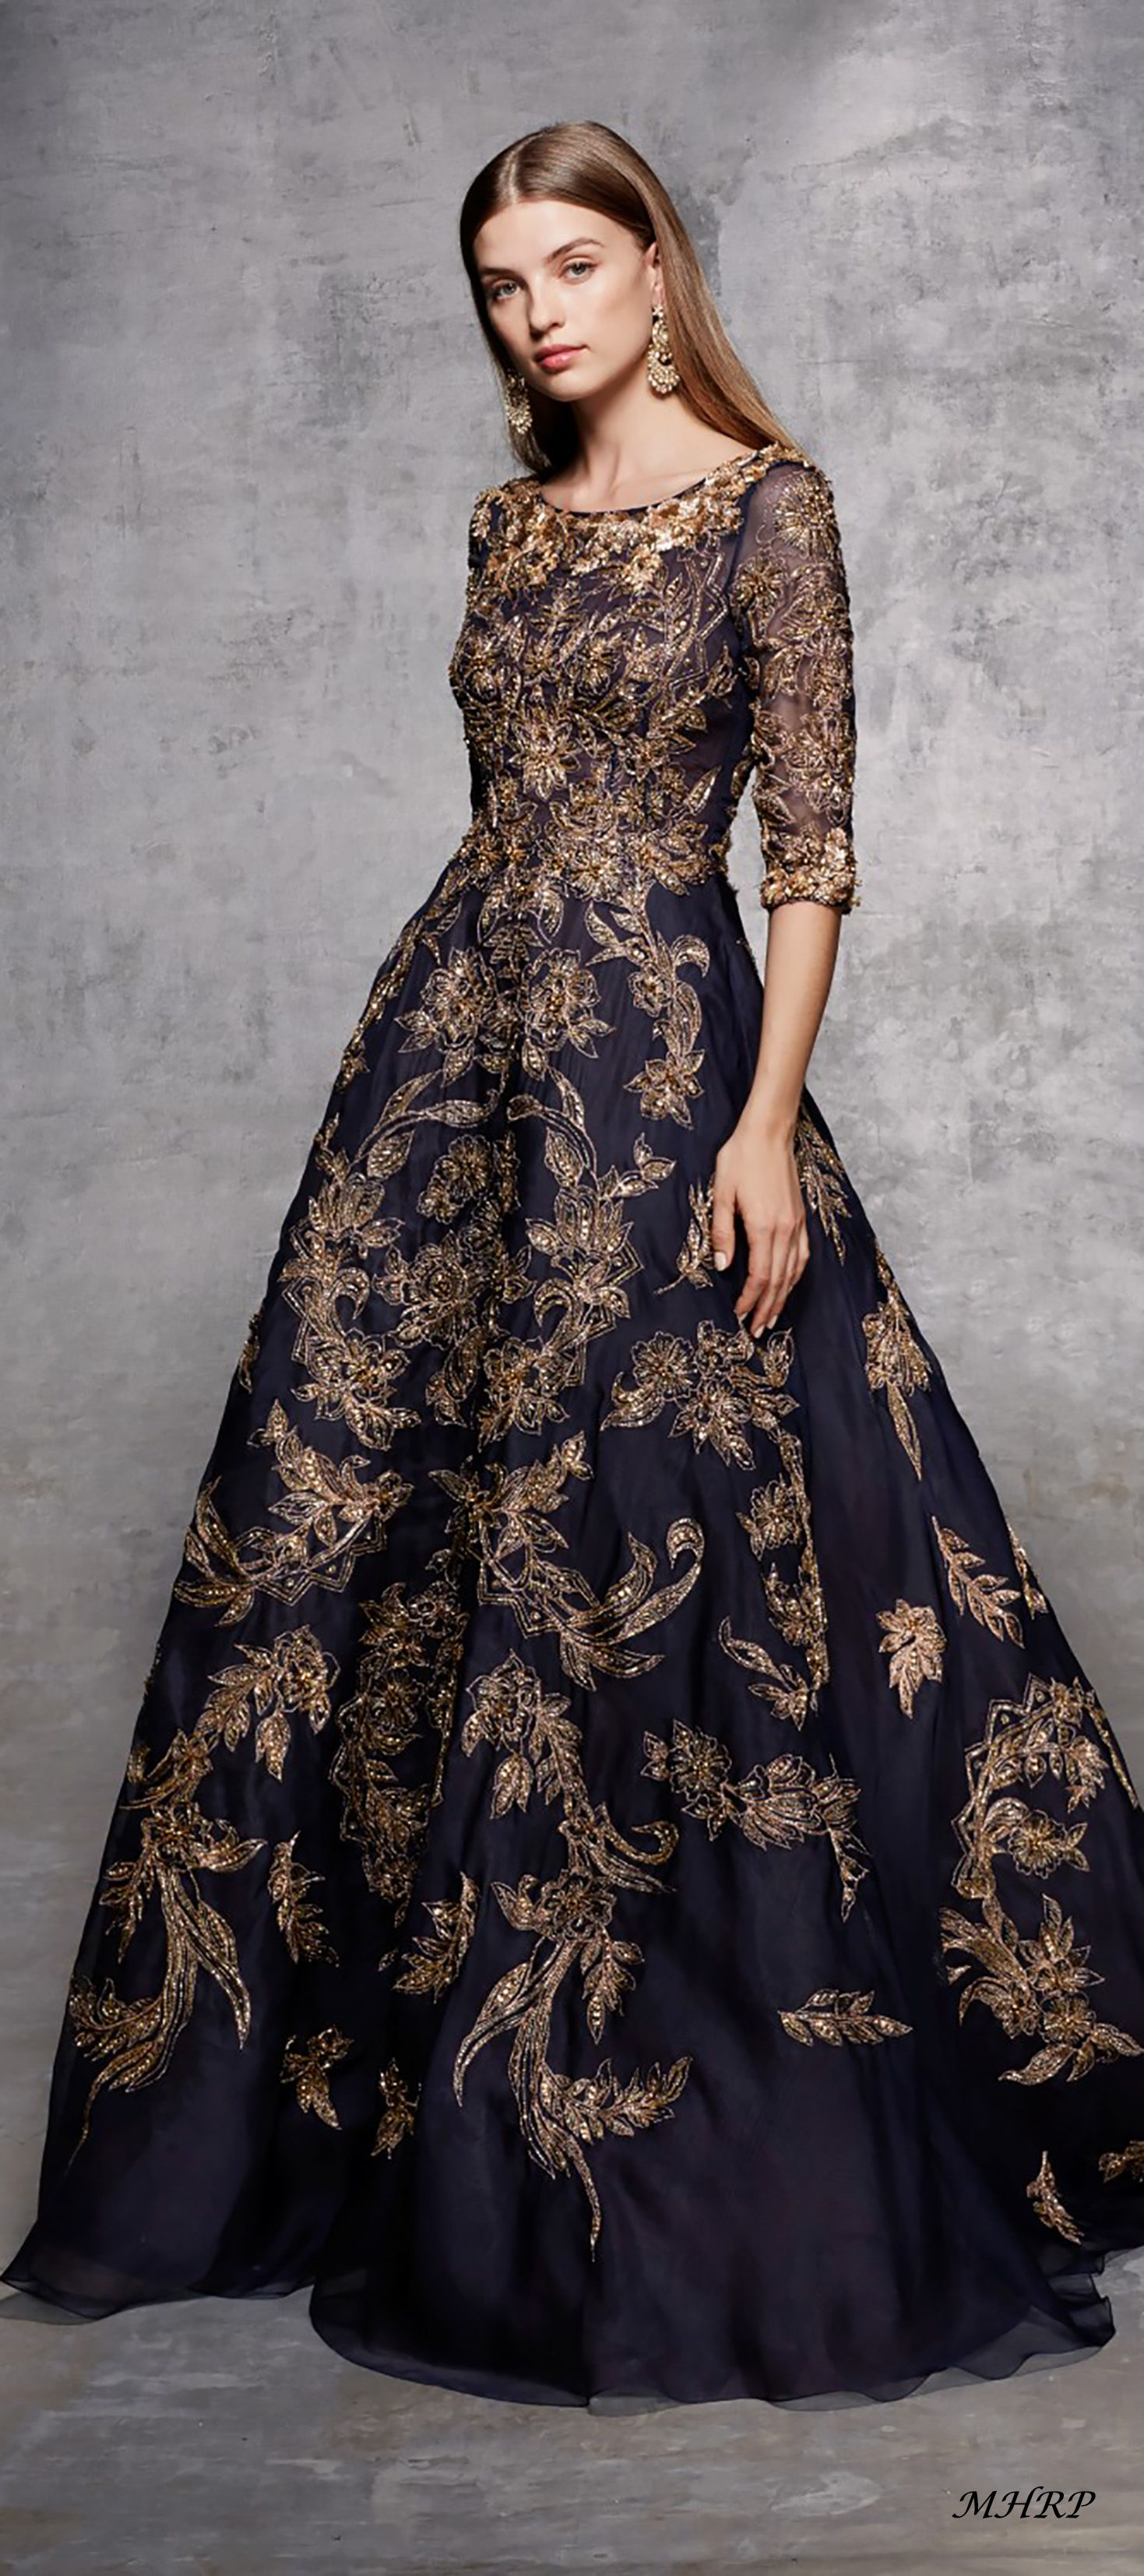 Marchesa prefall image pinned from marchesa dresses